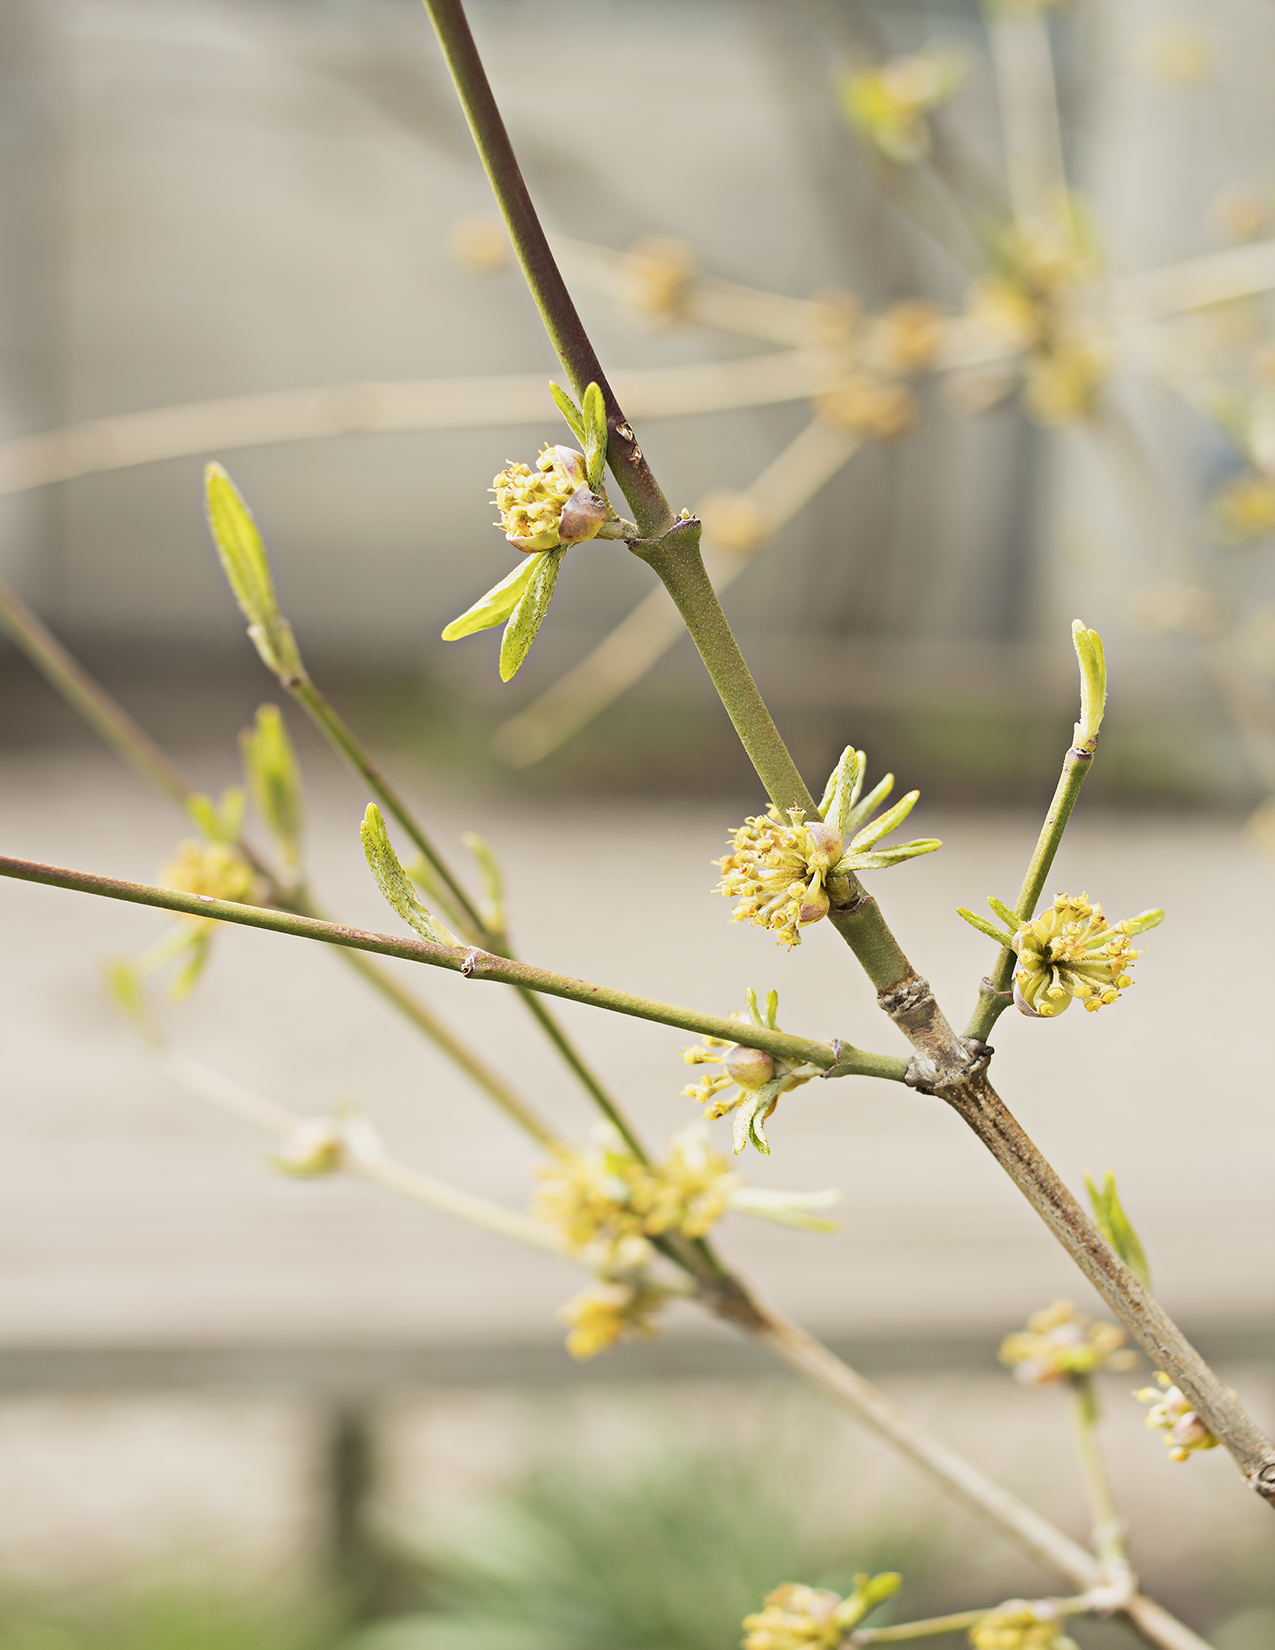 Eileen_Ko_Assignment_4_Thin_Green_Branches_New_Blossoming_Flowers